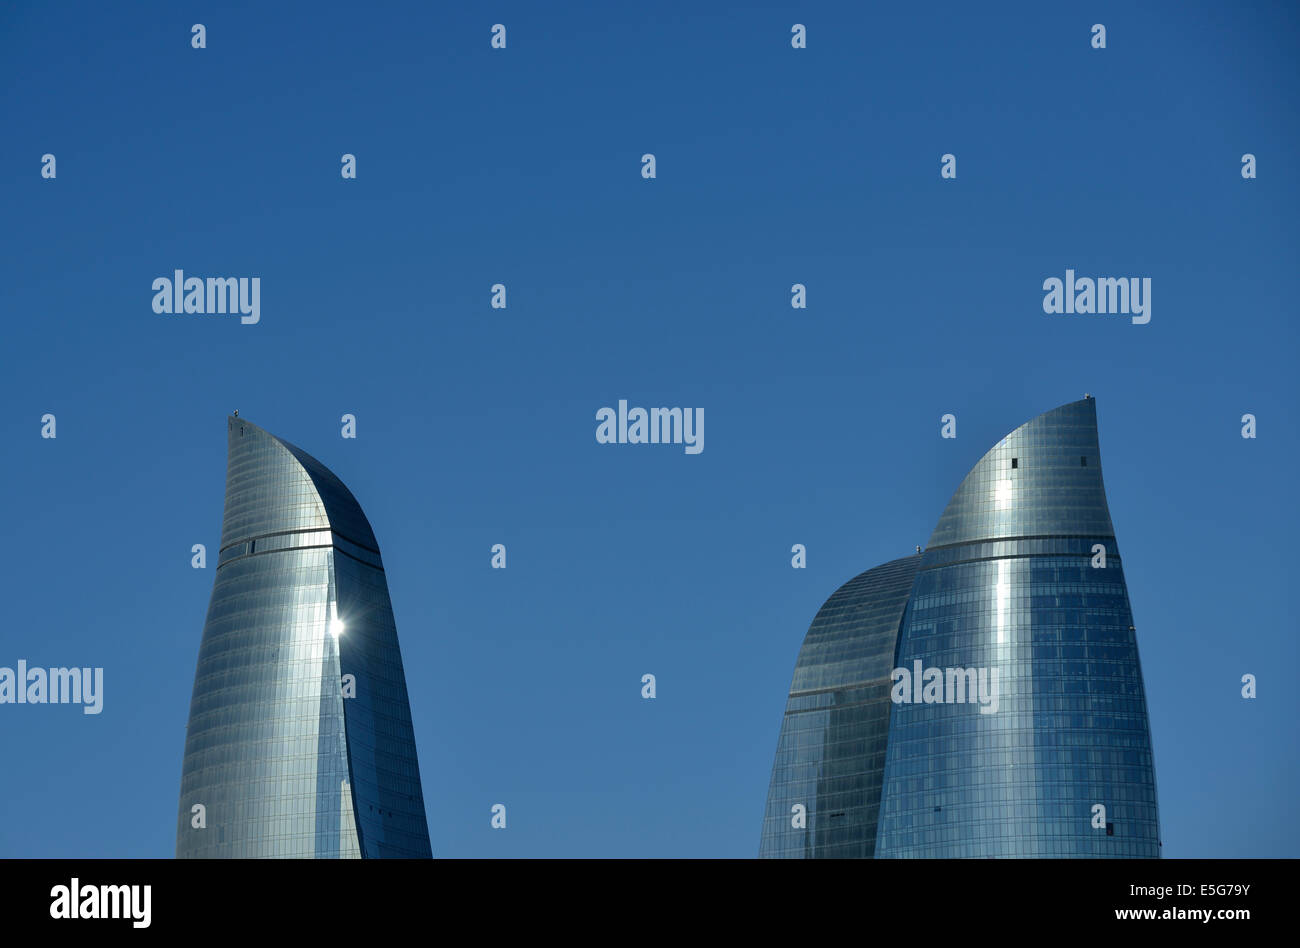 Flame Towers, Baku, Azerbaijan - Stock Image